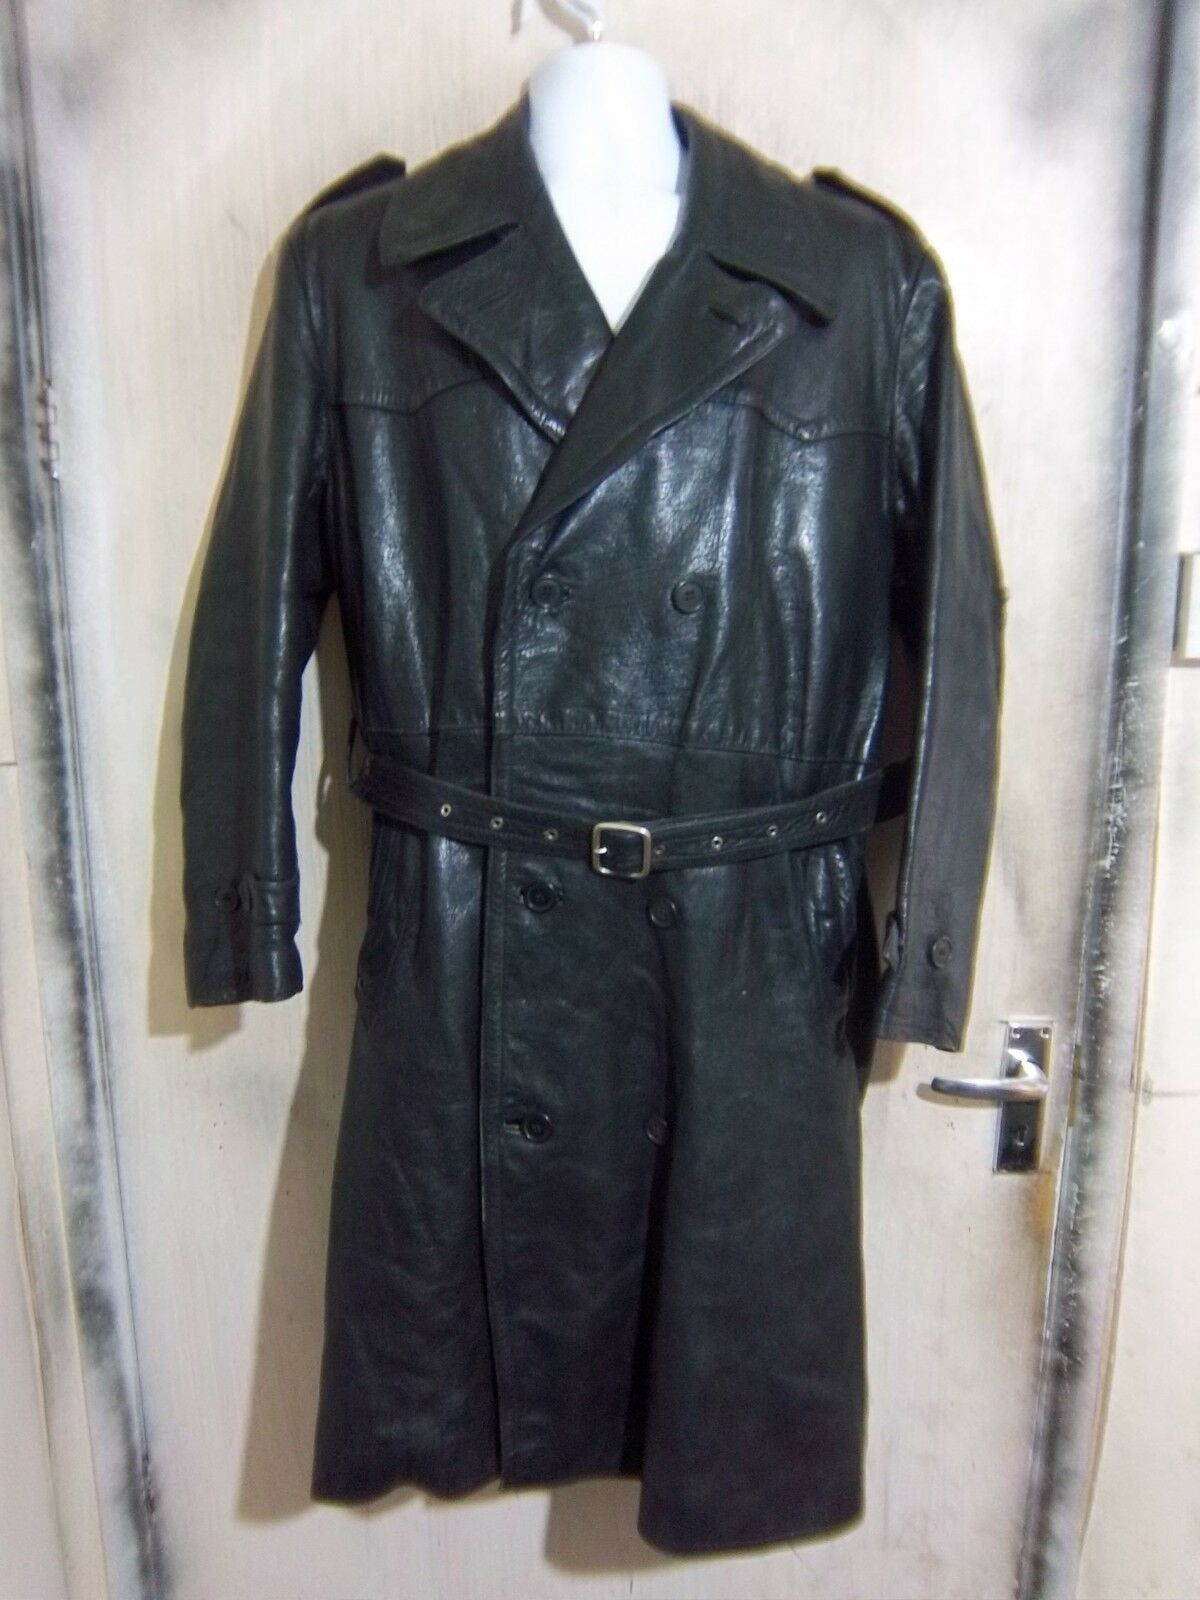 Vintage 50's German Stadler Police Officers Goatskin Leather Trench Coat Jacket Size XL Wool Lined, Motorcycle or Classic Car